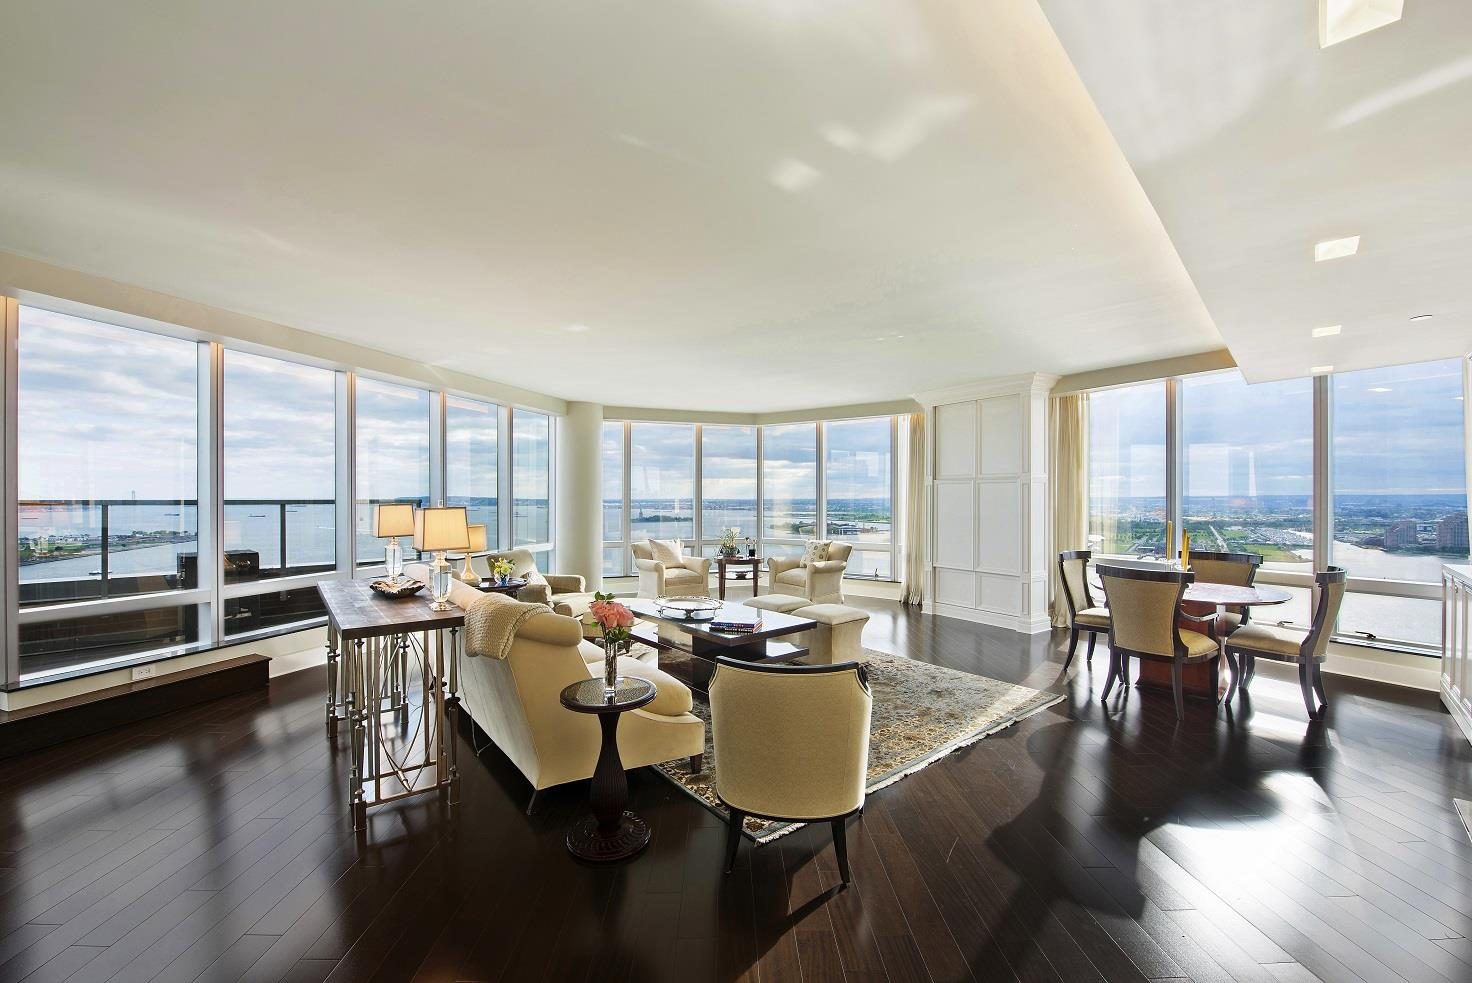 This Penthouse is now the highest-priced property in downtown Manhattan.